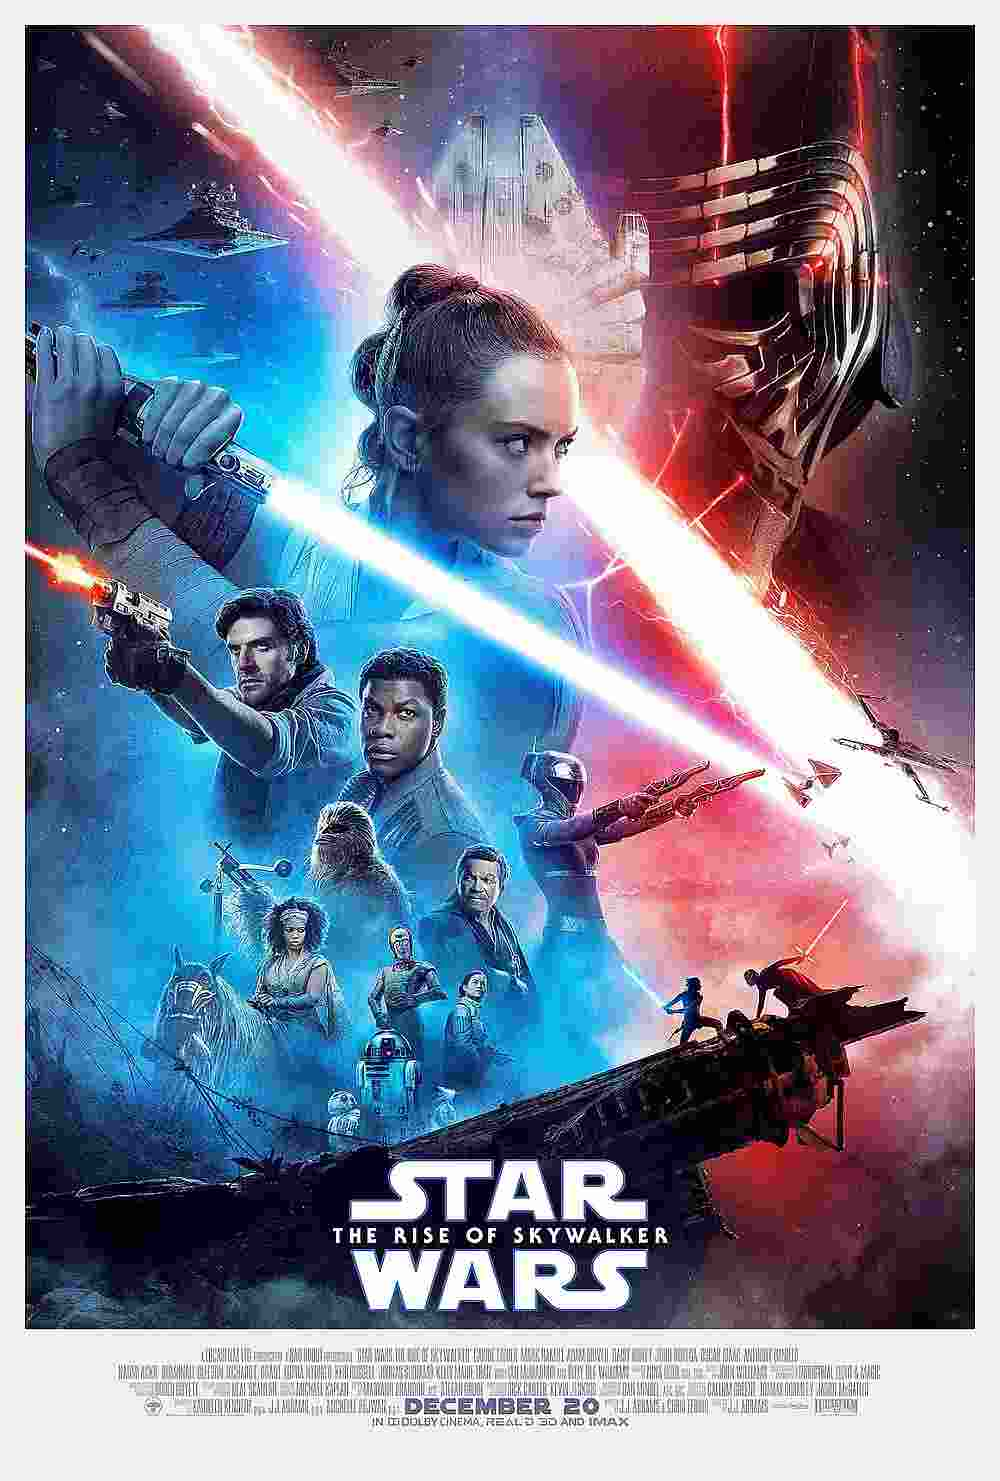 'Star Wars: The Rise of Skywalker' opensd with a estimated take of US$175.5 million in North America, according to an industry watcher. — Image courtesy of Walt Disney Studios Motion Pictures/Lucasfilm